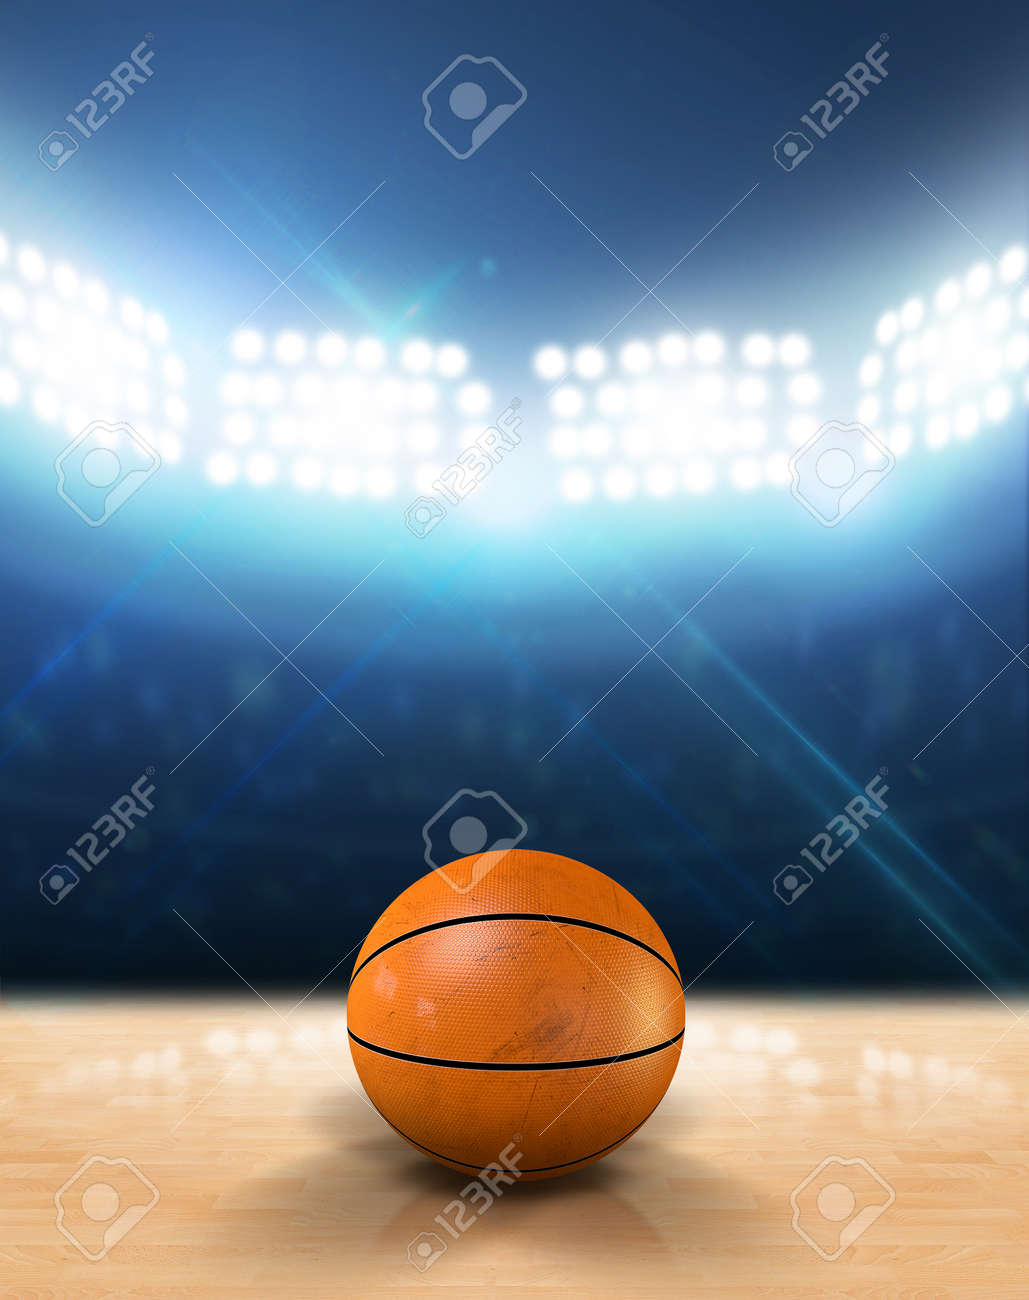 An Indoor Basketball Court With An Orange Ball On An Unmarked ...